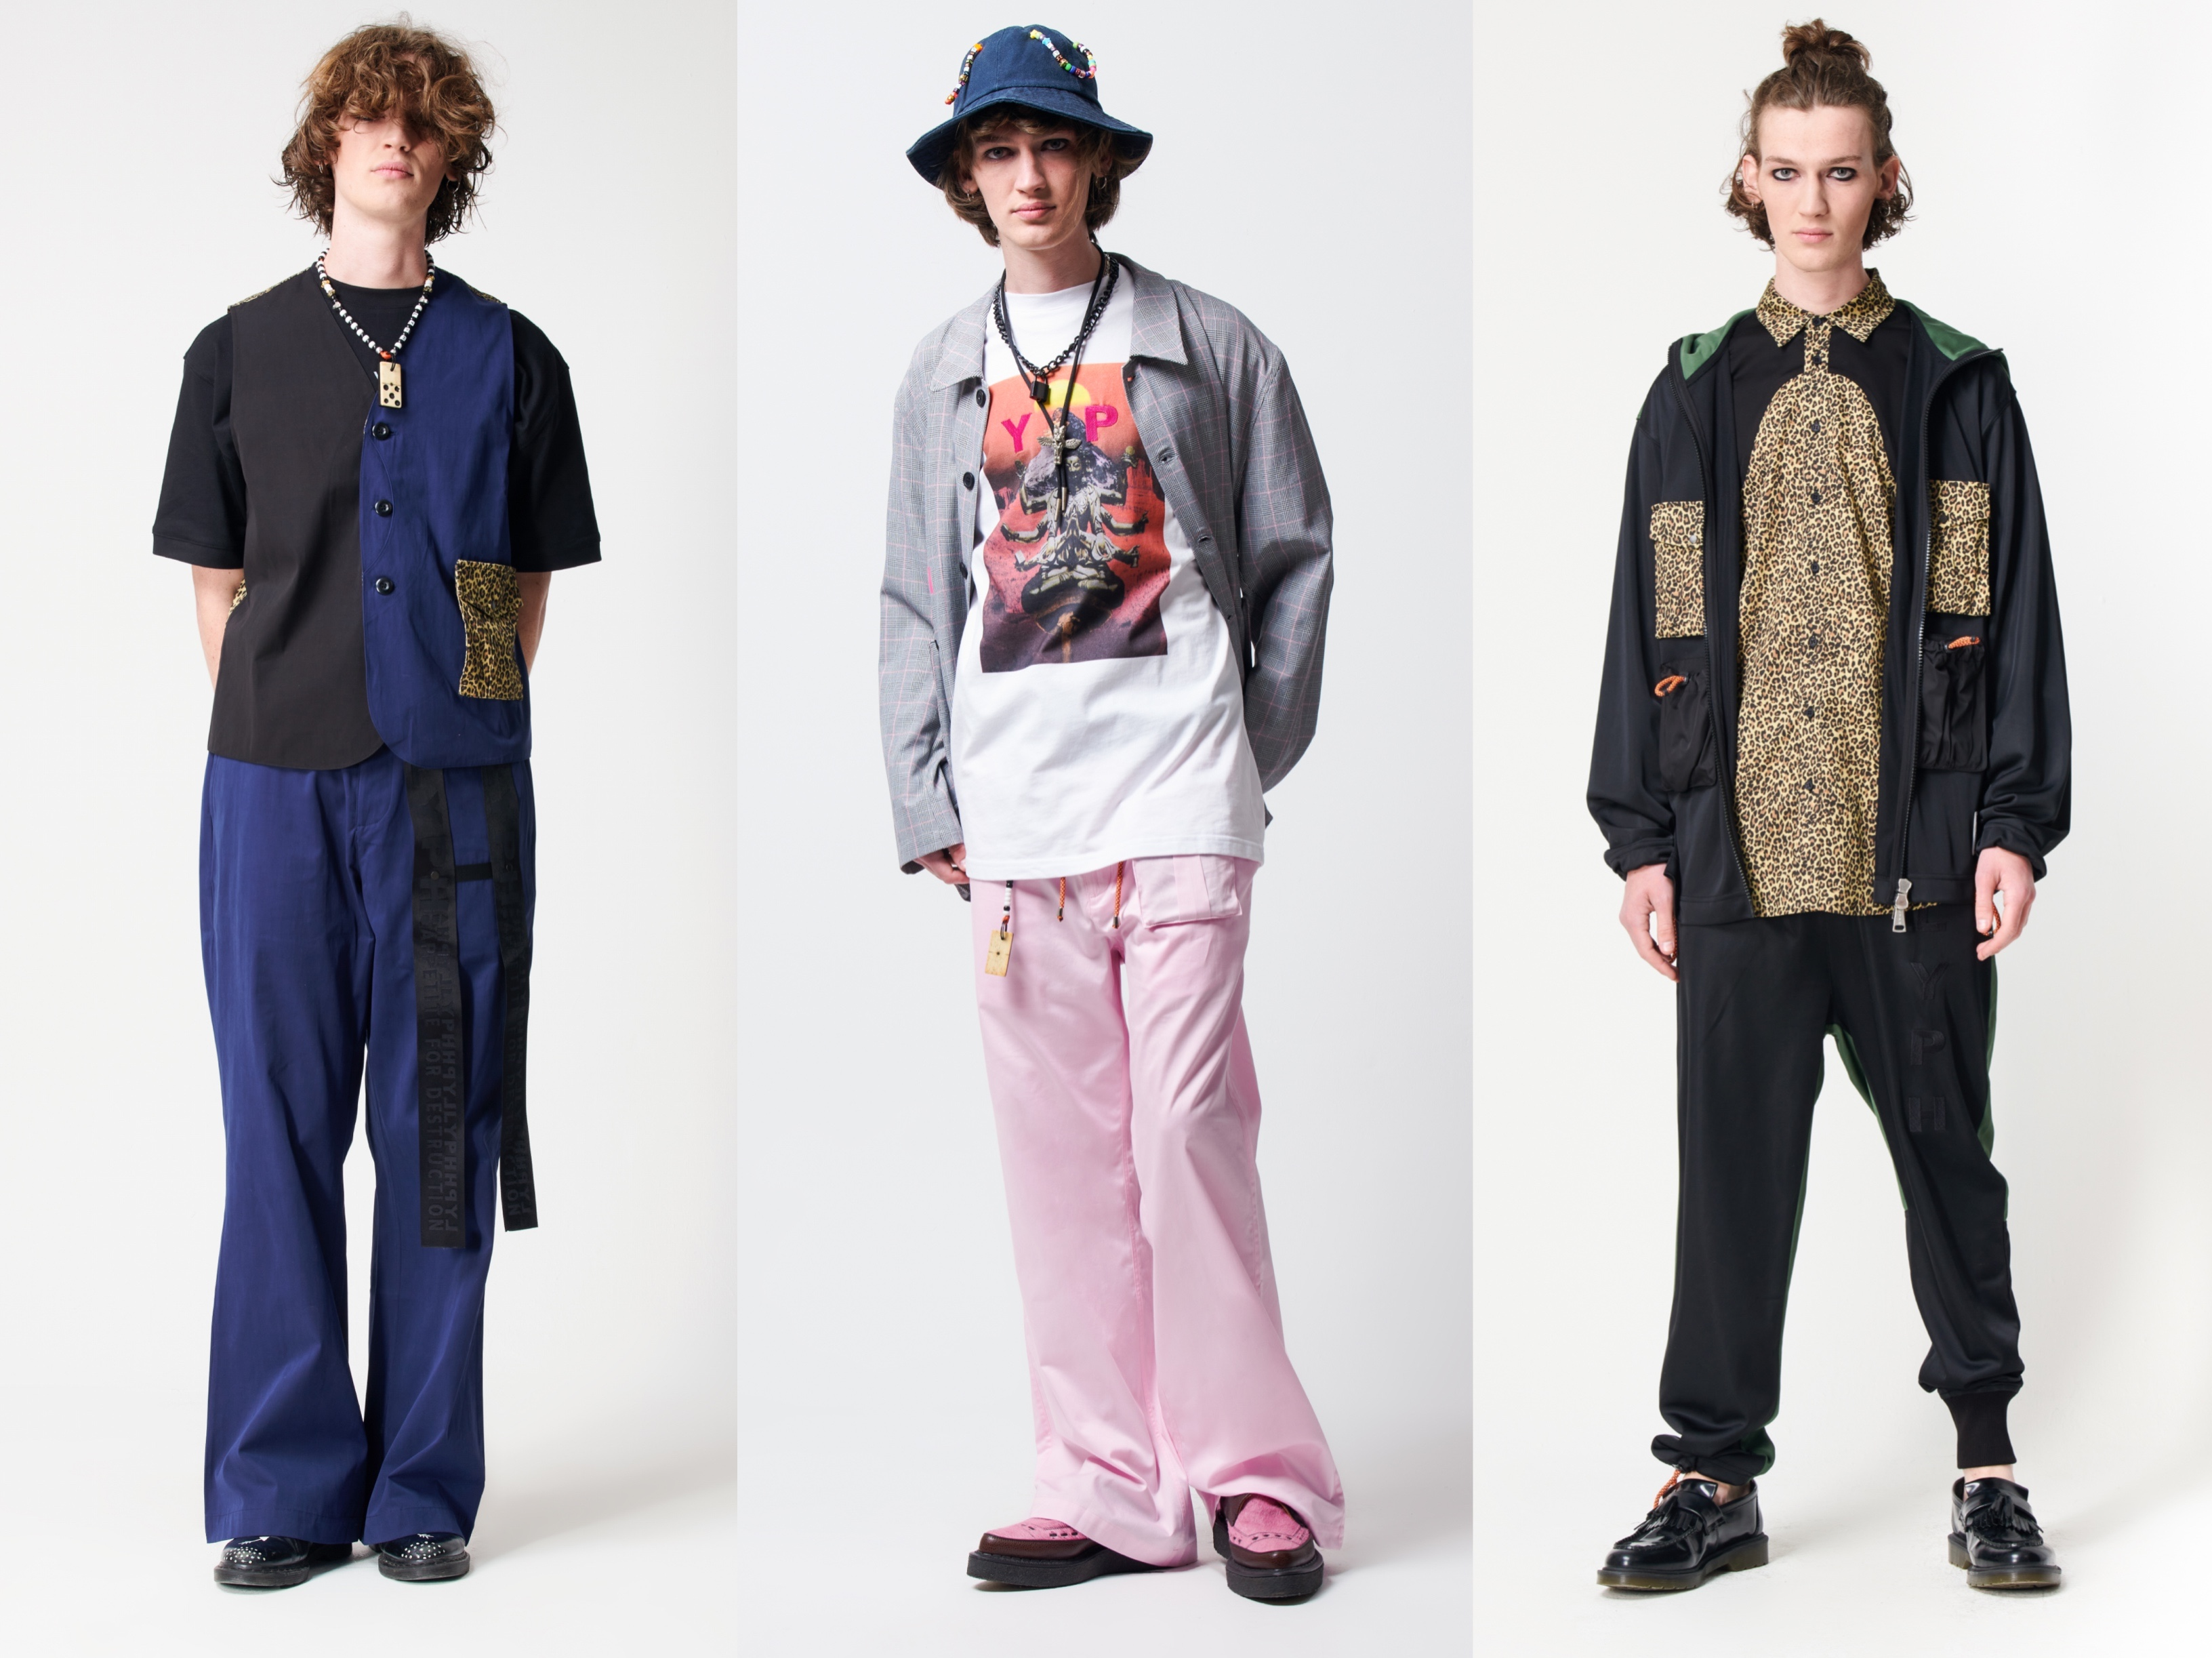 Three looks from LYPH spring 2022 collection